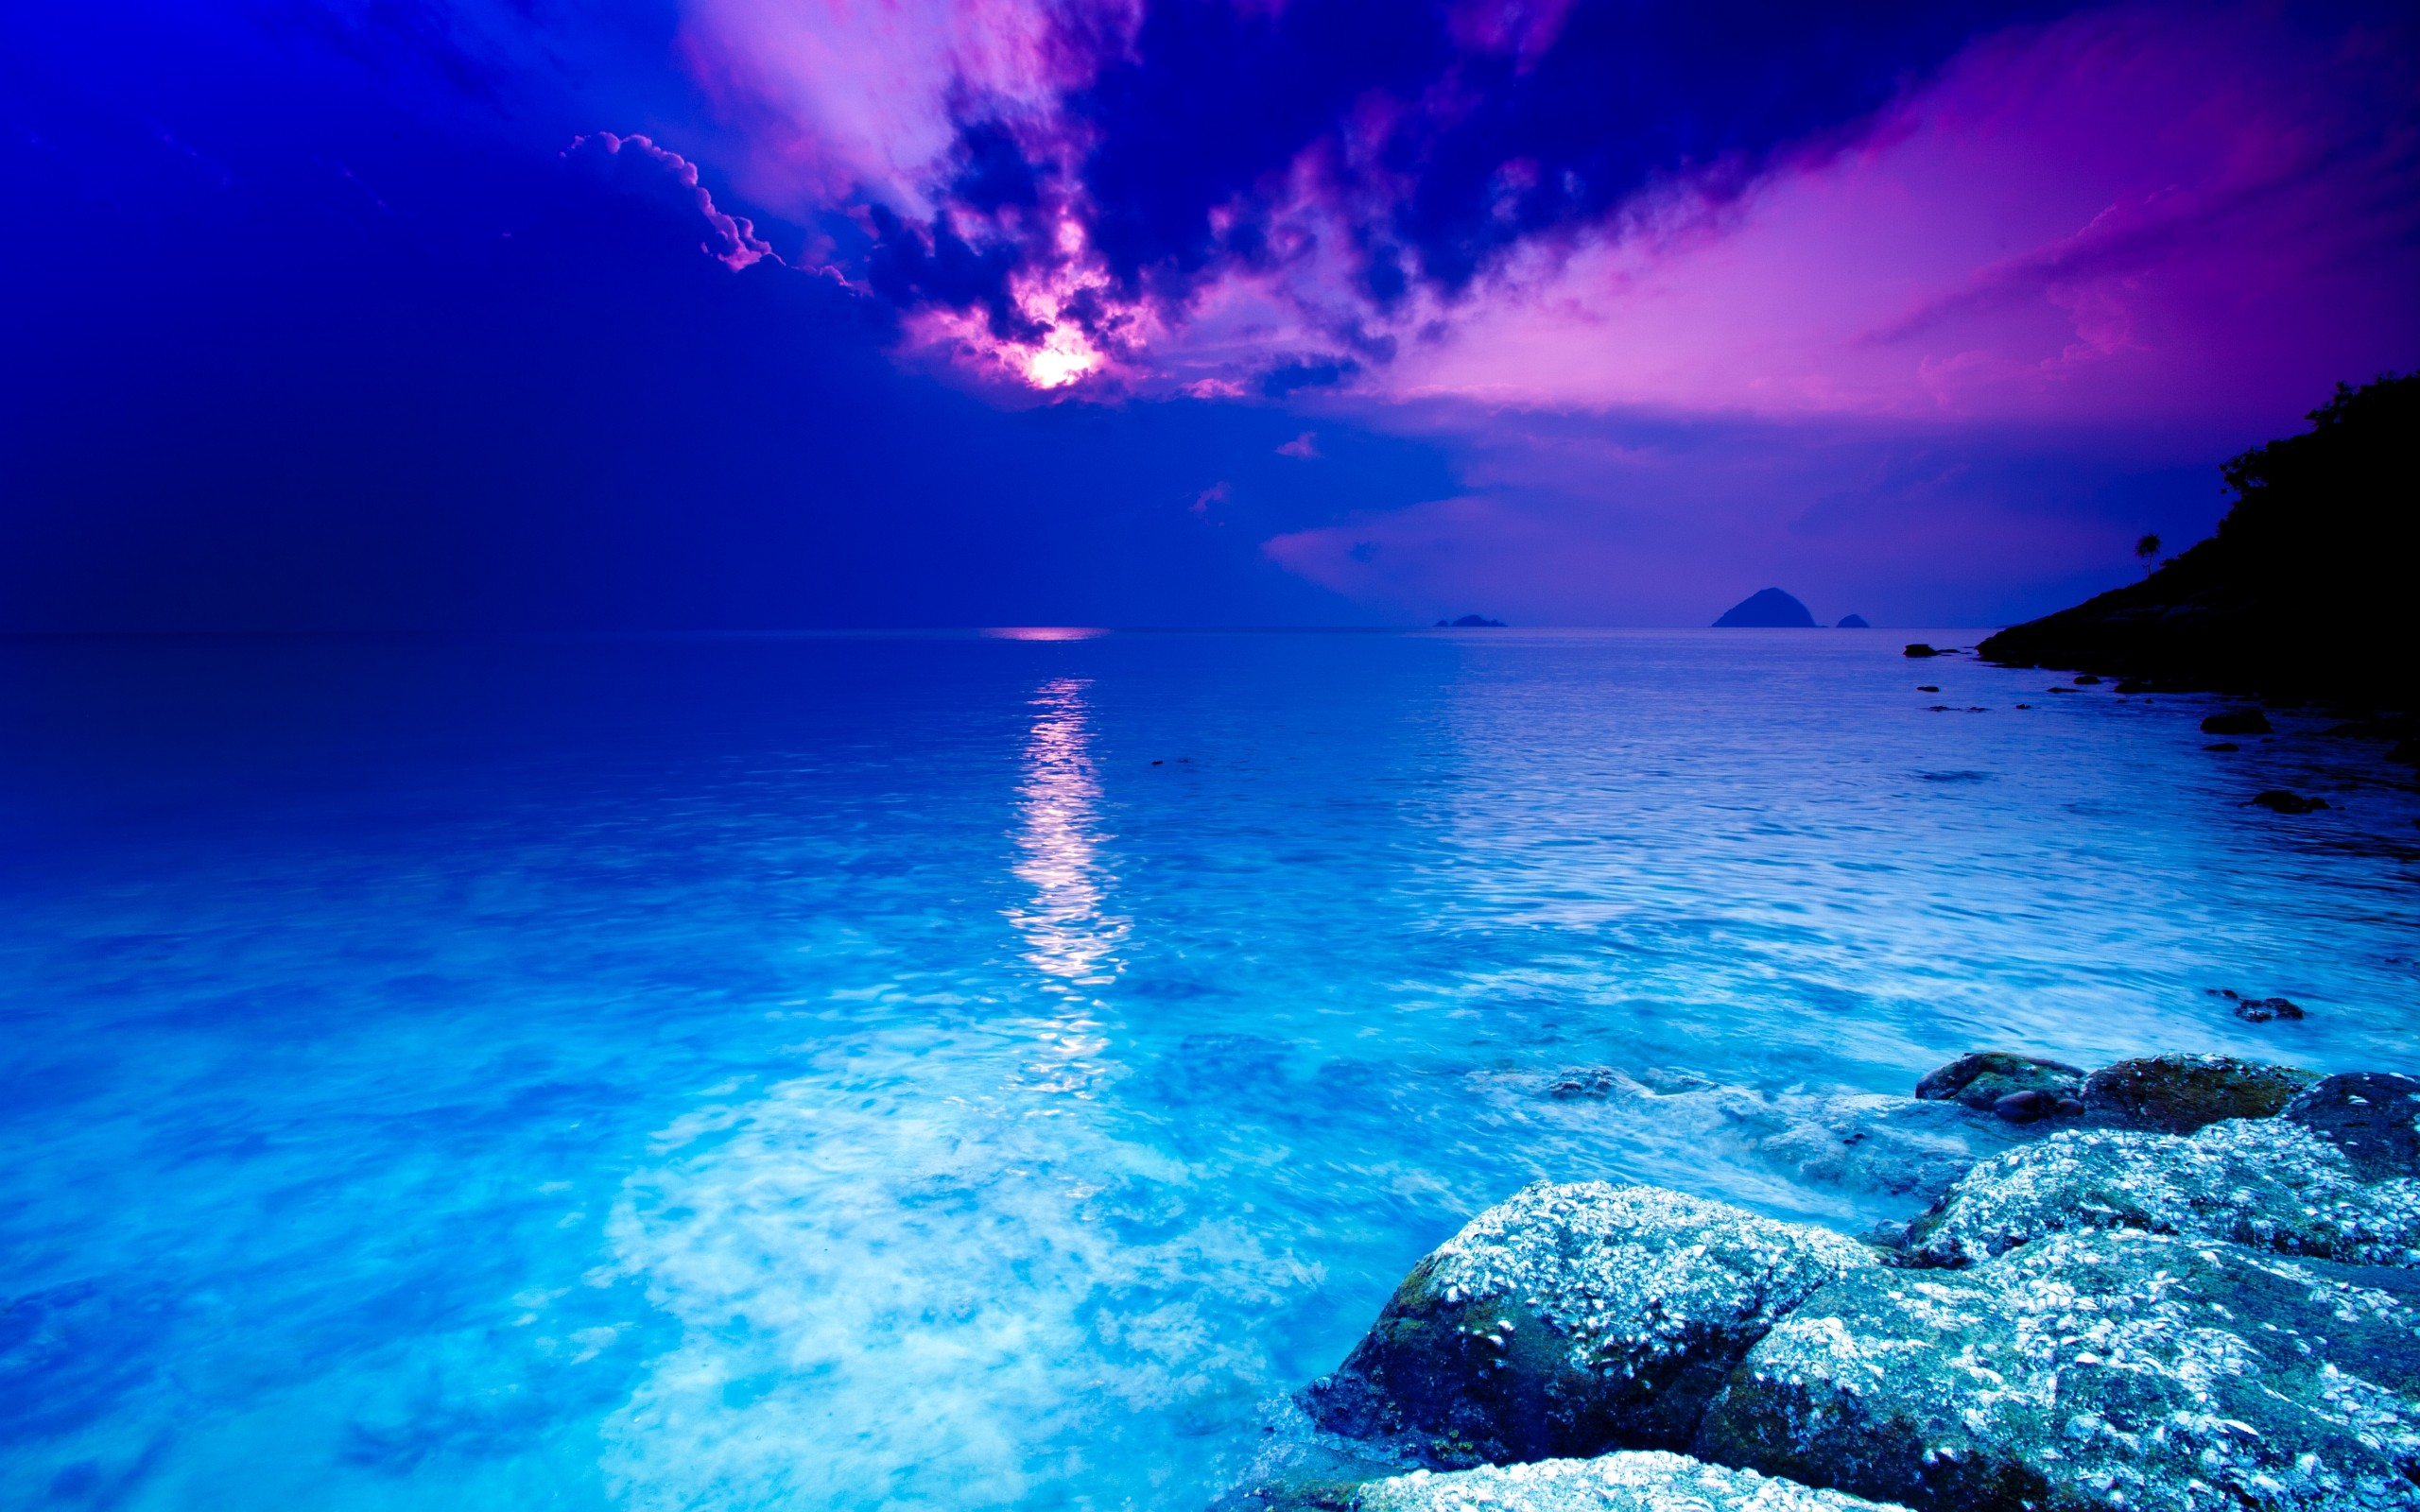 Blue Sea Wallpaper 2560x1600 Blue Sea Crystal Thailand 2560x1600